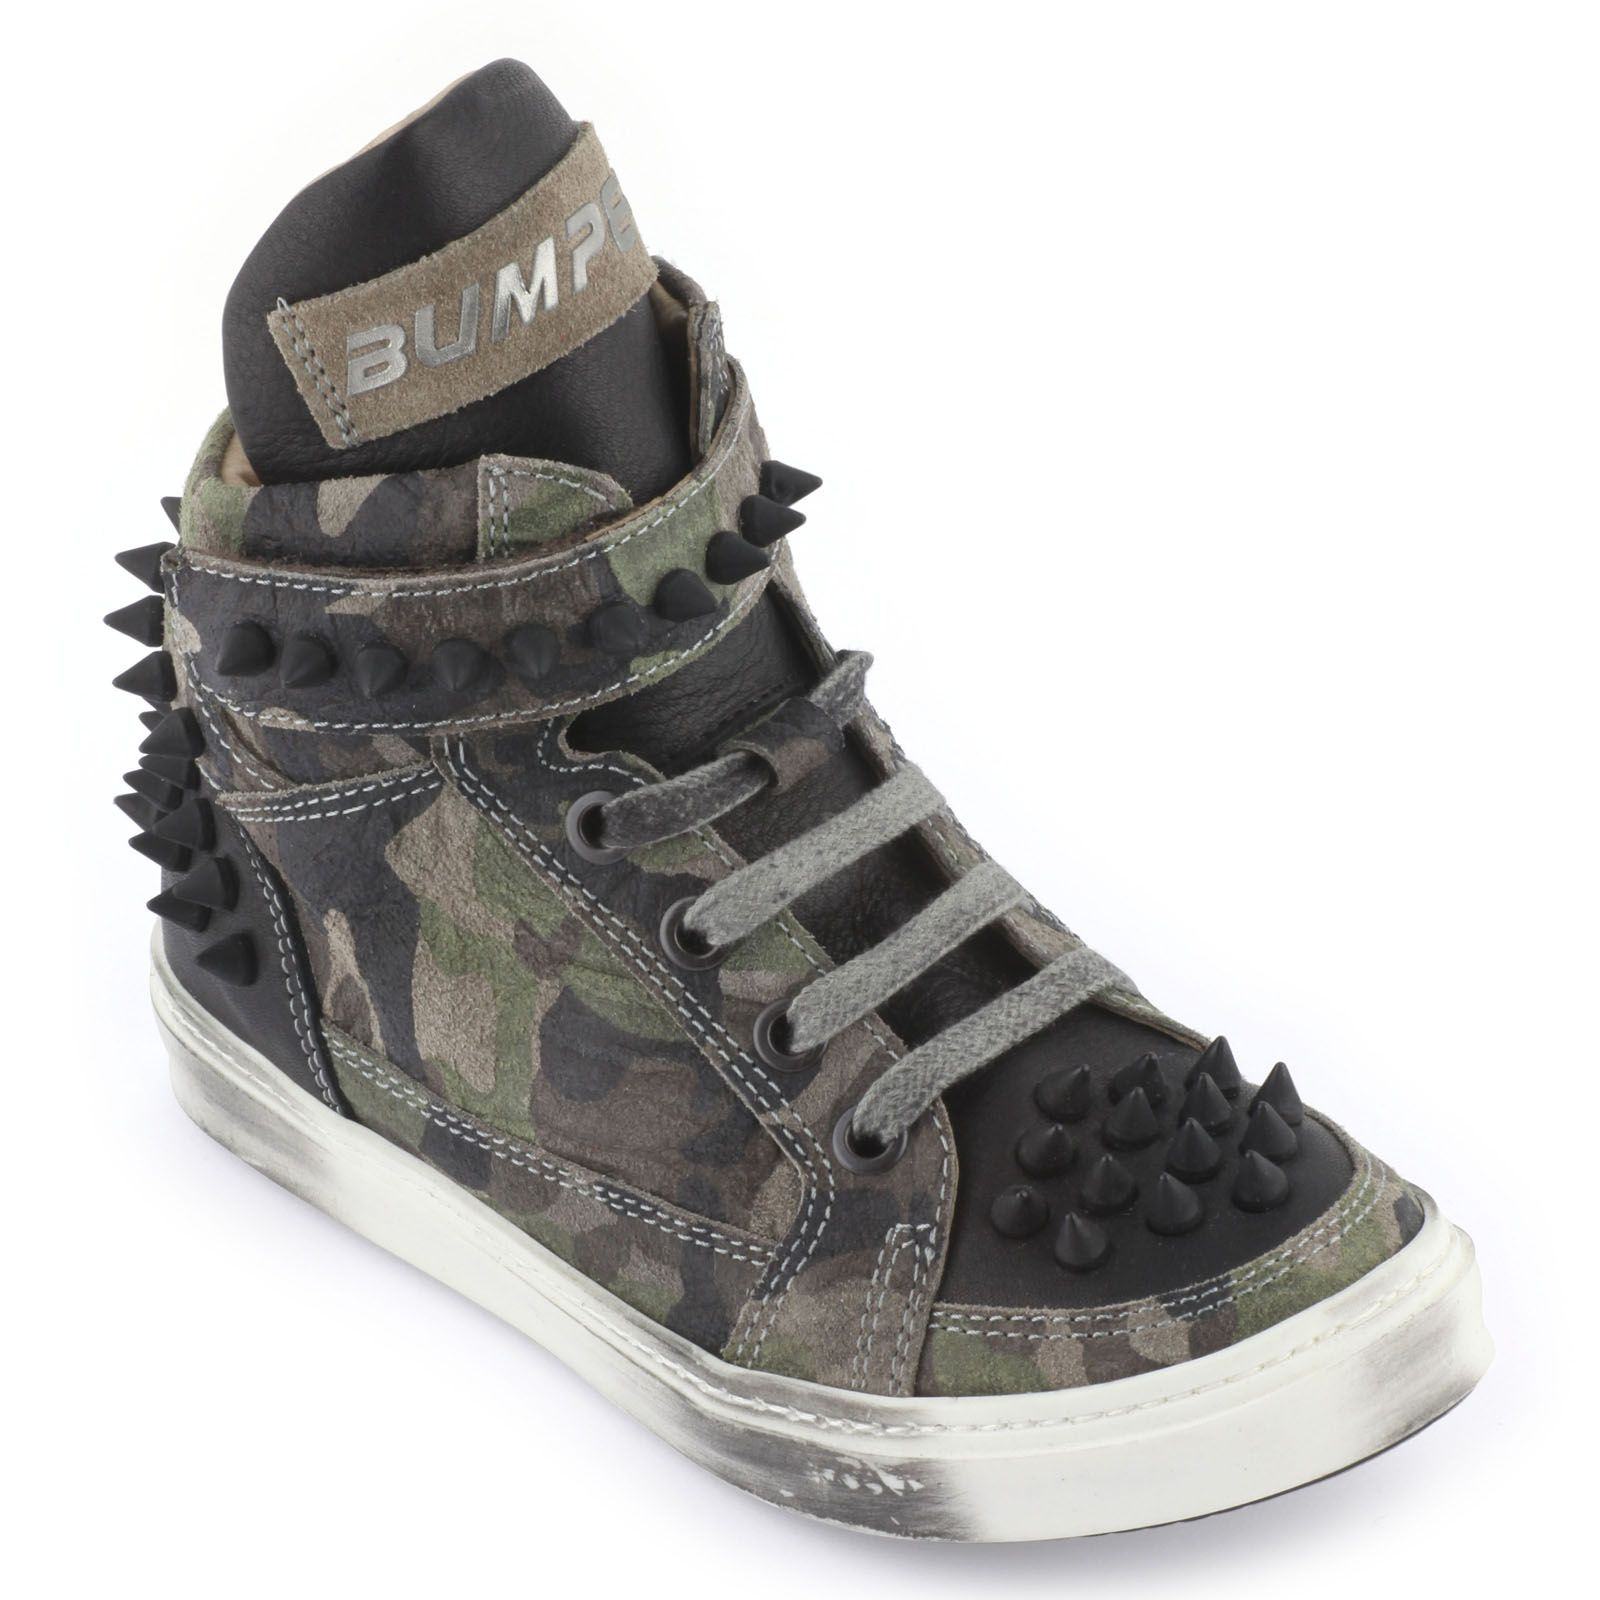 Camouflage leather trainers with laces by Bumper, at Melijoe.com!